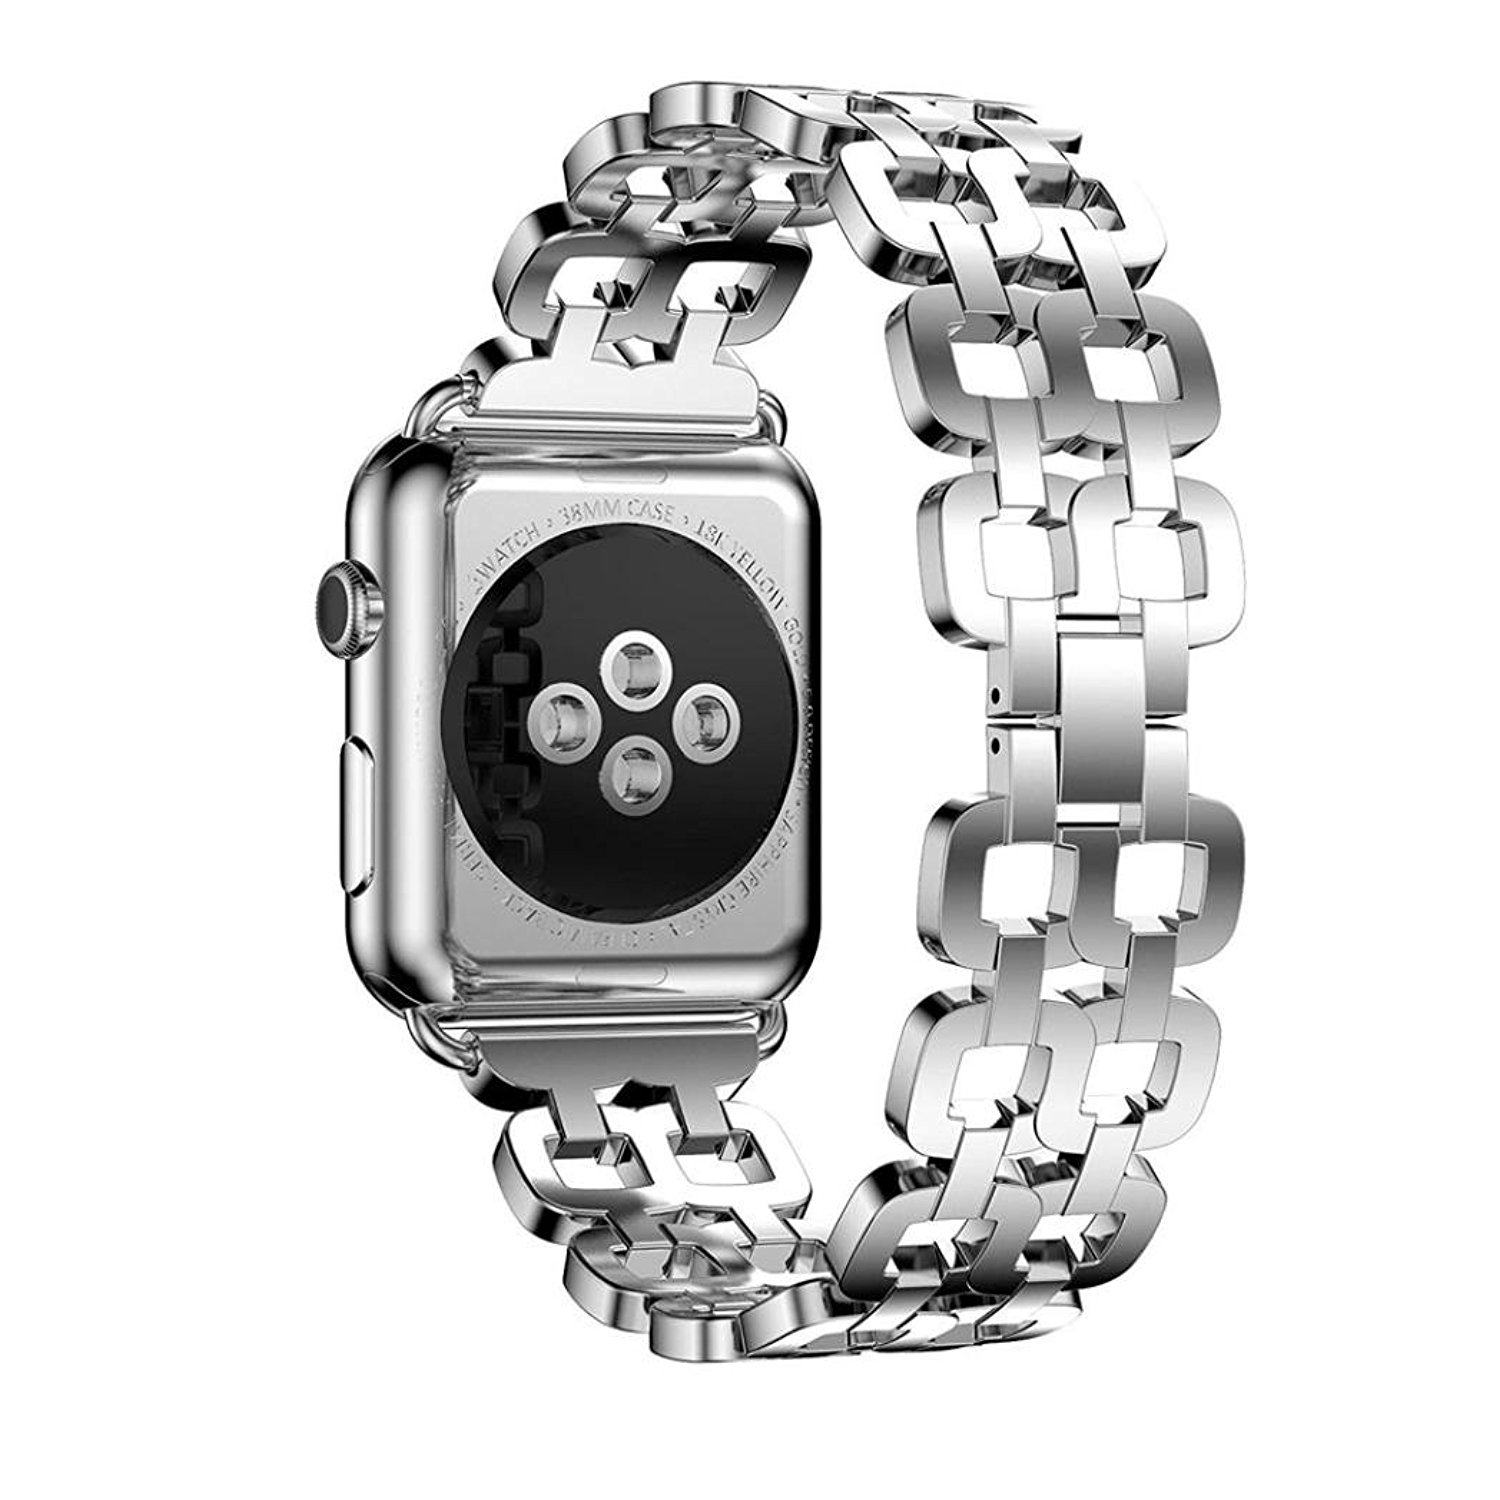 Alonea Genuine Stainless Steel Bracelet Band Strap For Apple Watch Series 2 38mm